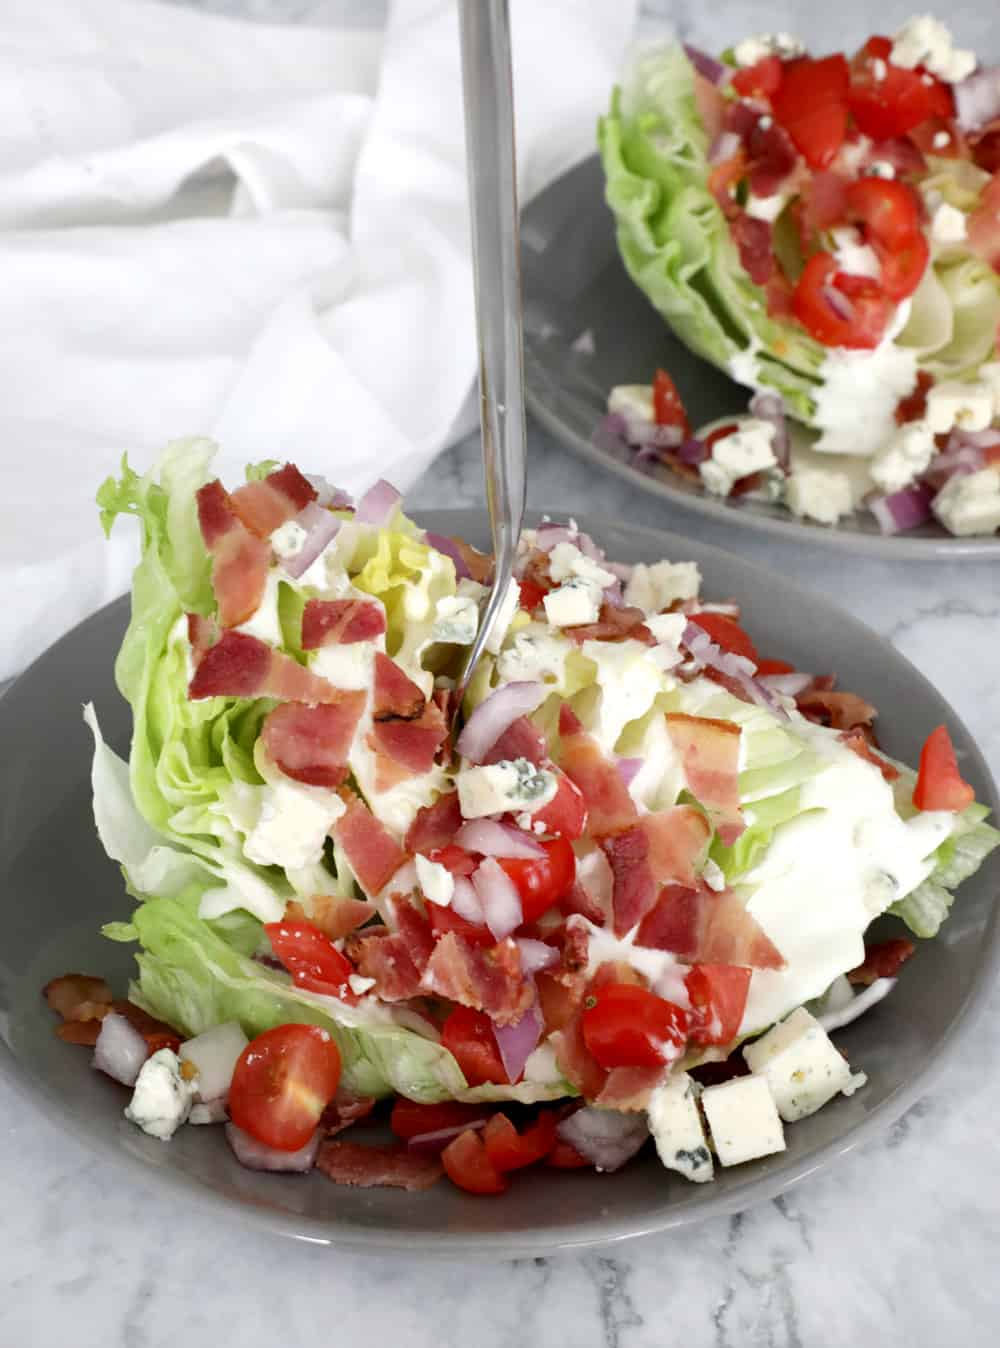 wedge salad with a fork sticking straight out into the air